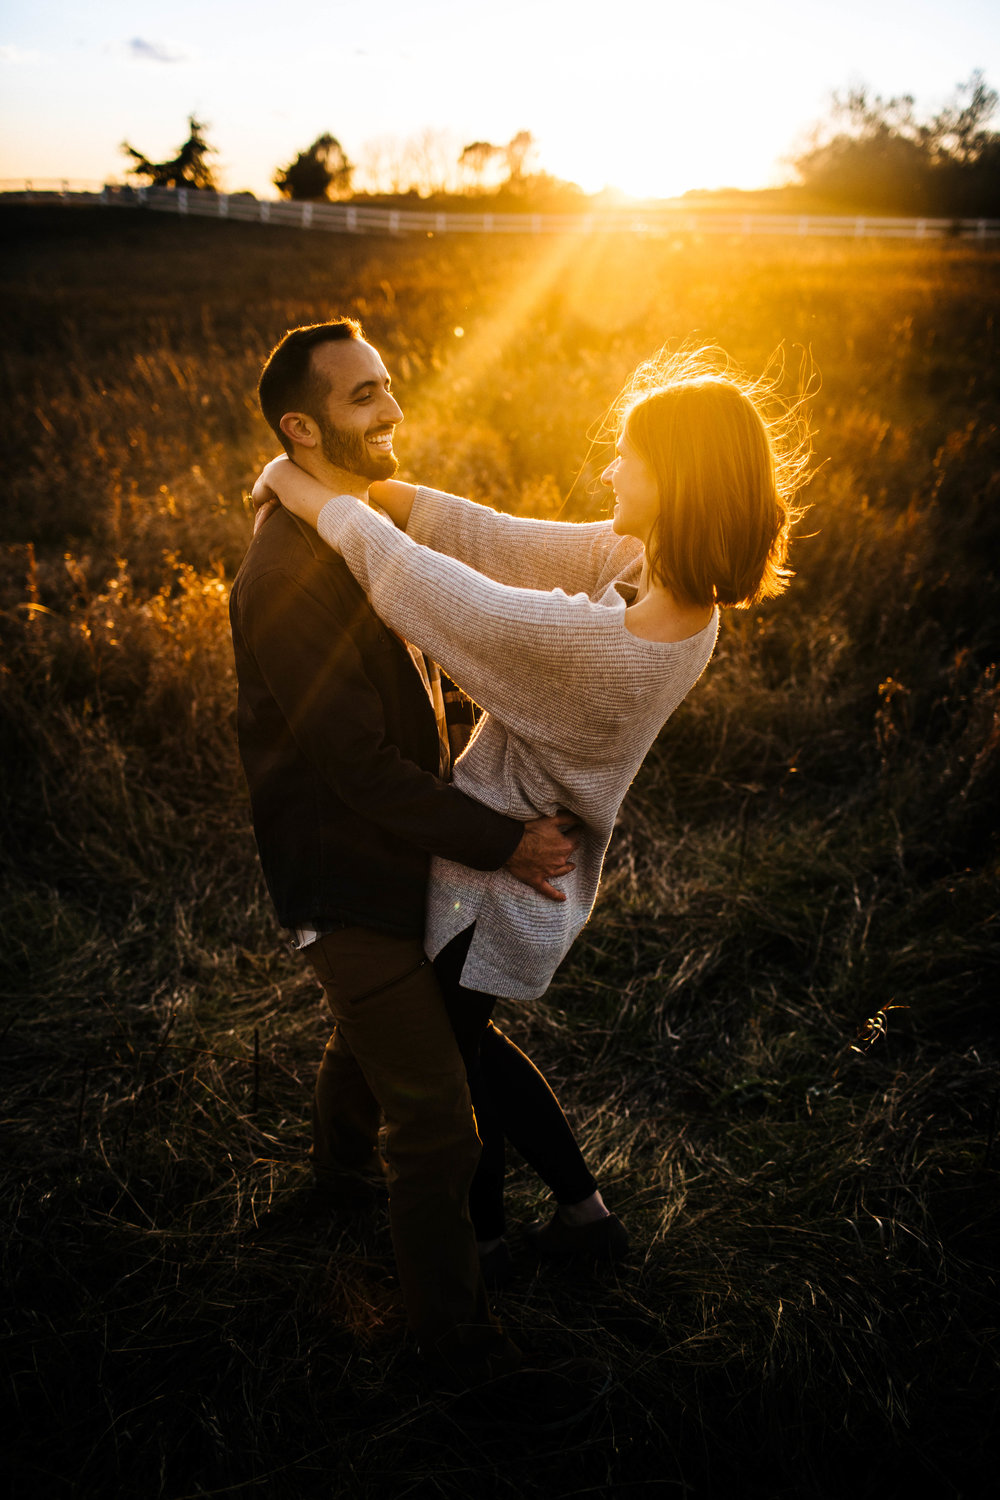 CampfireEngagementShoot (41 of 60).jpg